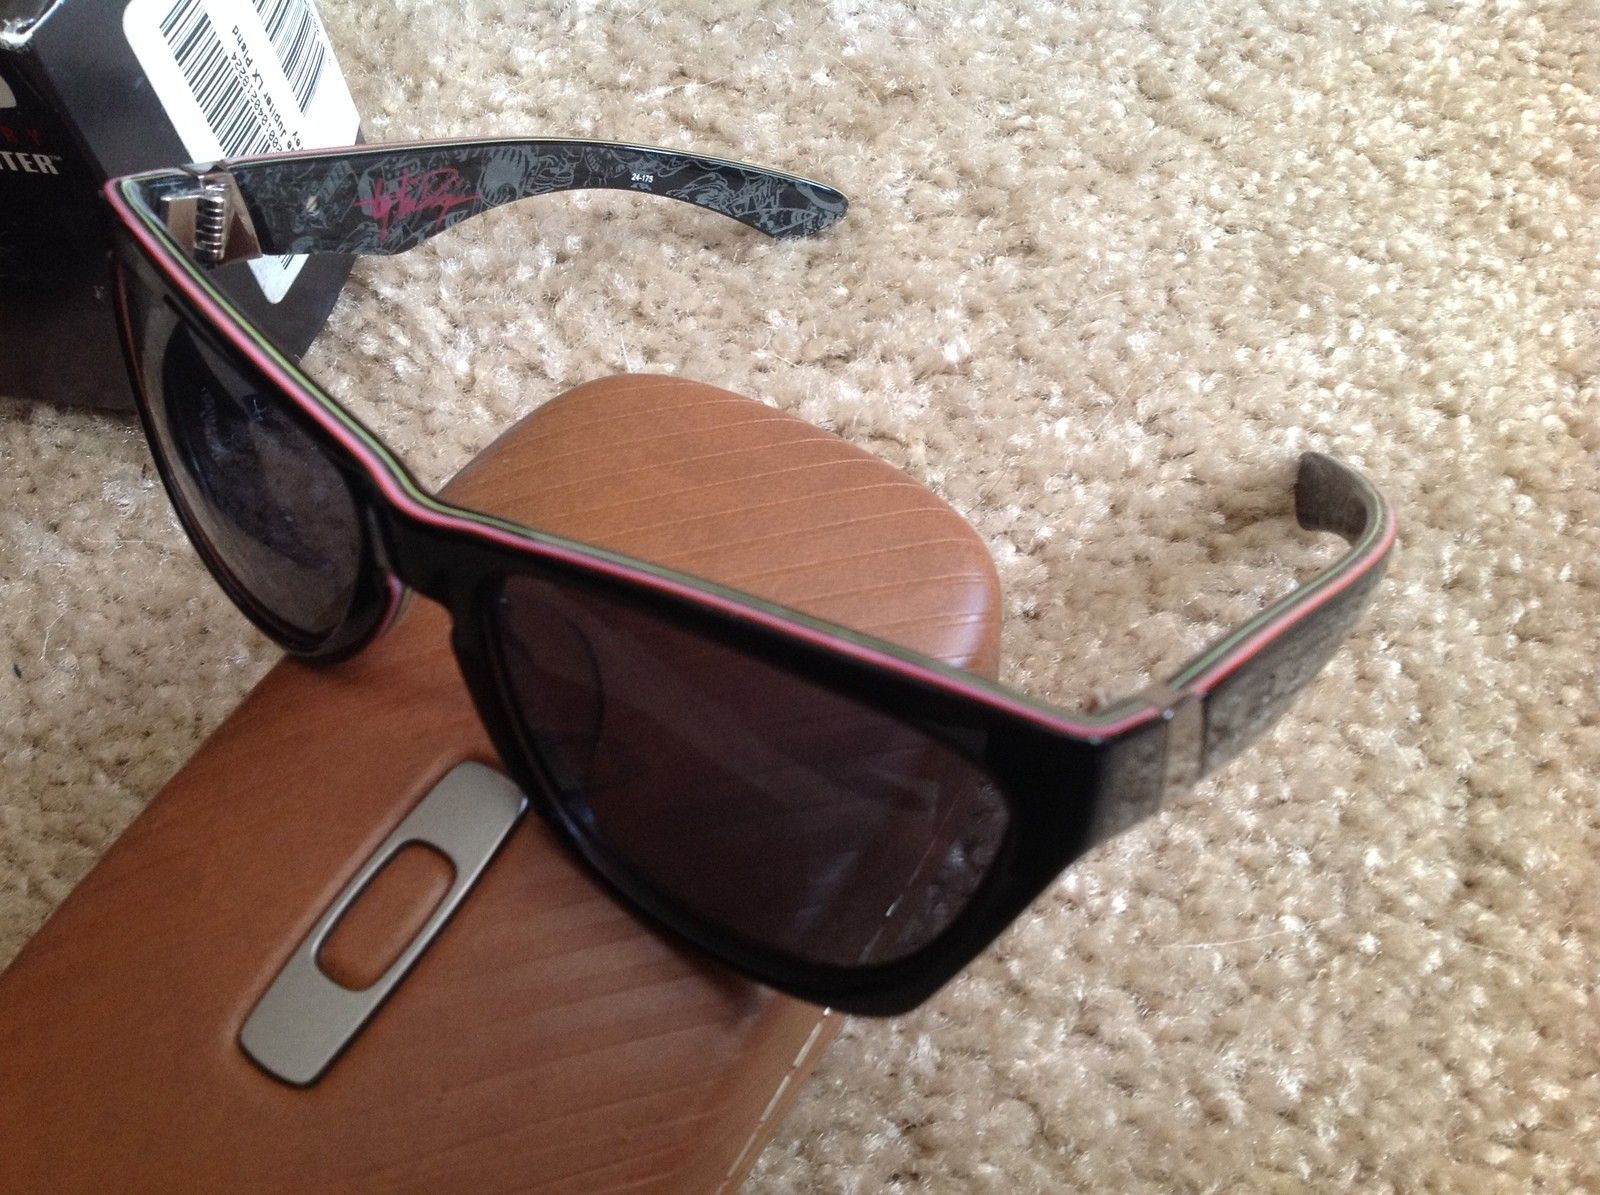 Oakley Troy lee designs Jupiter NIB $100 - image.jpeg